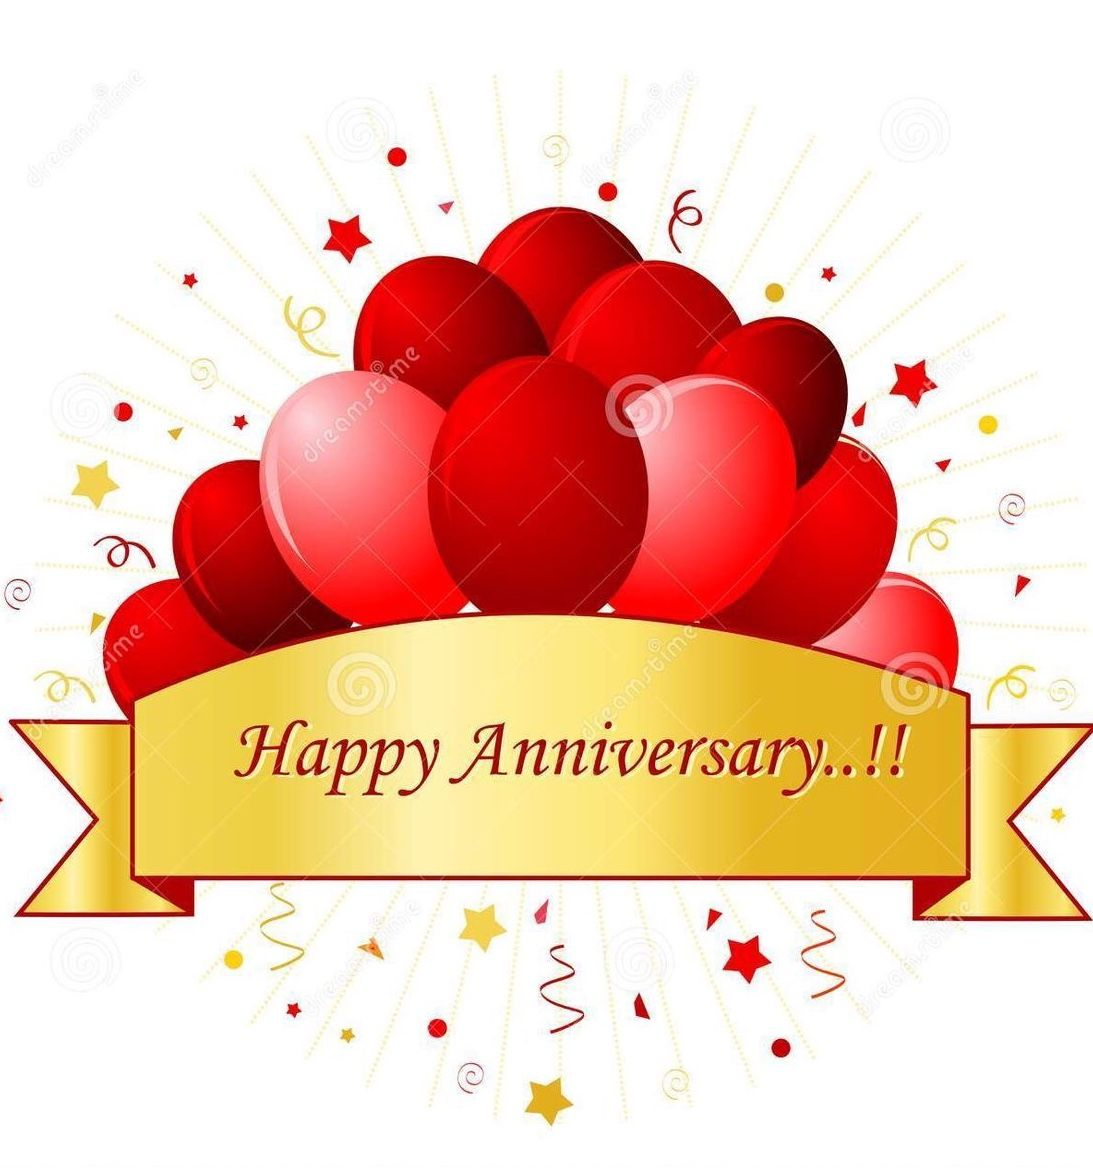 45++ Happy anniversary clipart banner ideas in 2021